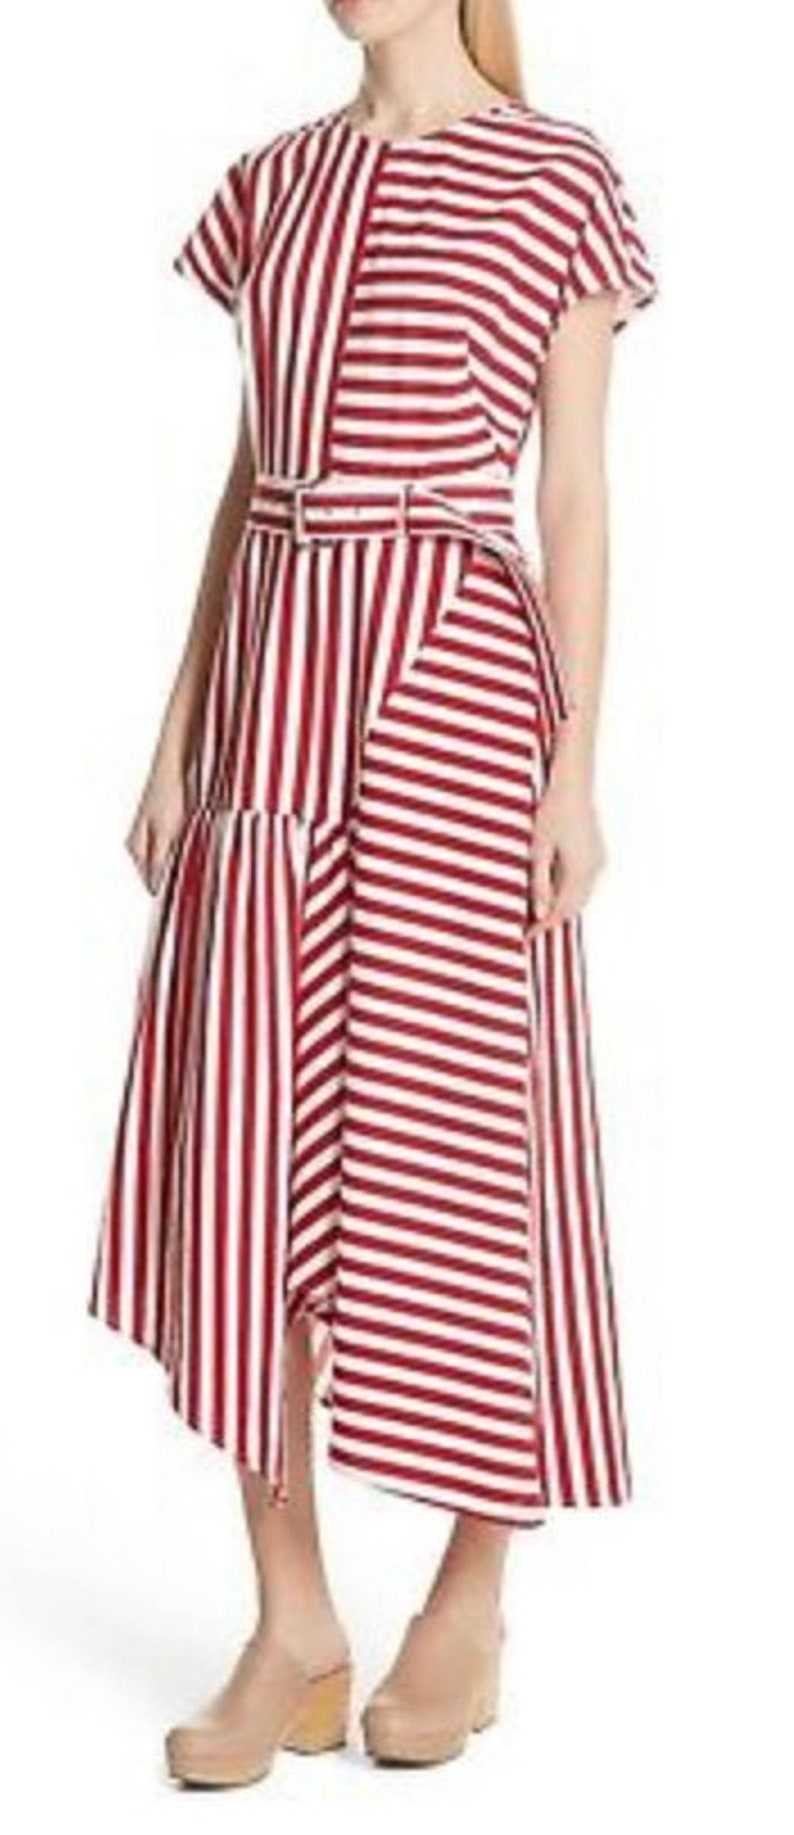 Rachel Comey NWOT Red and White Striped Asymmetrical Dress size XS